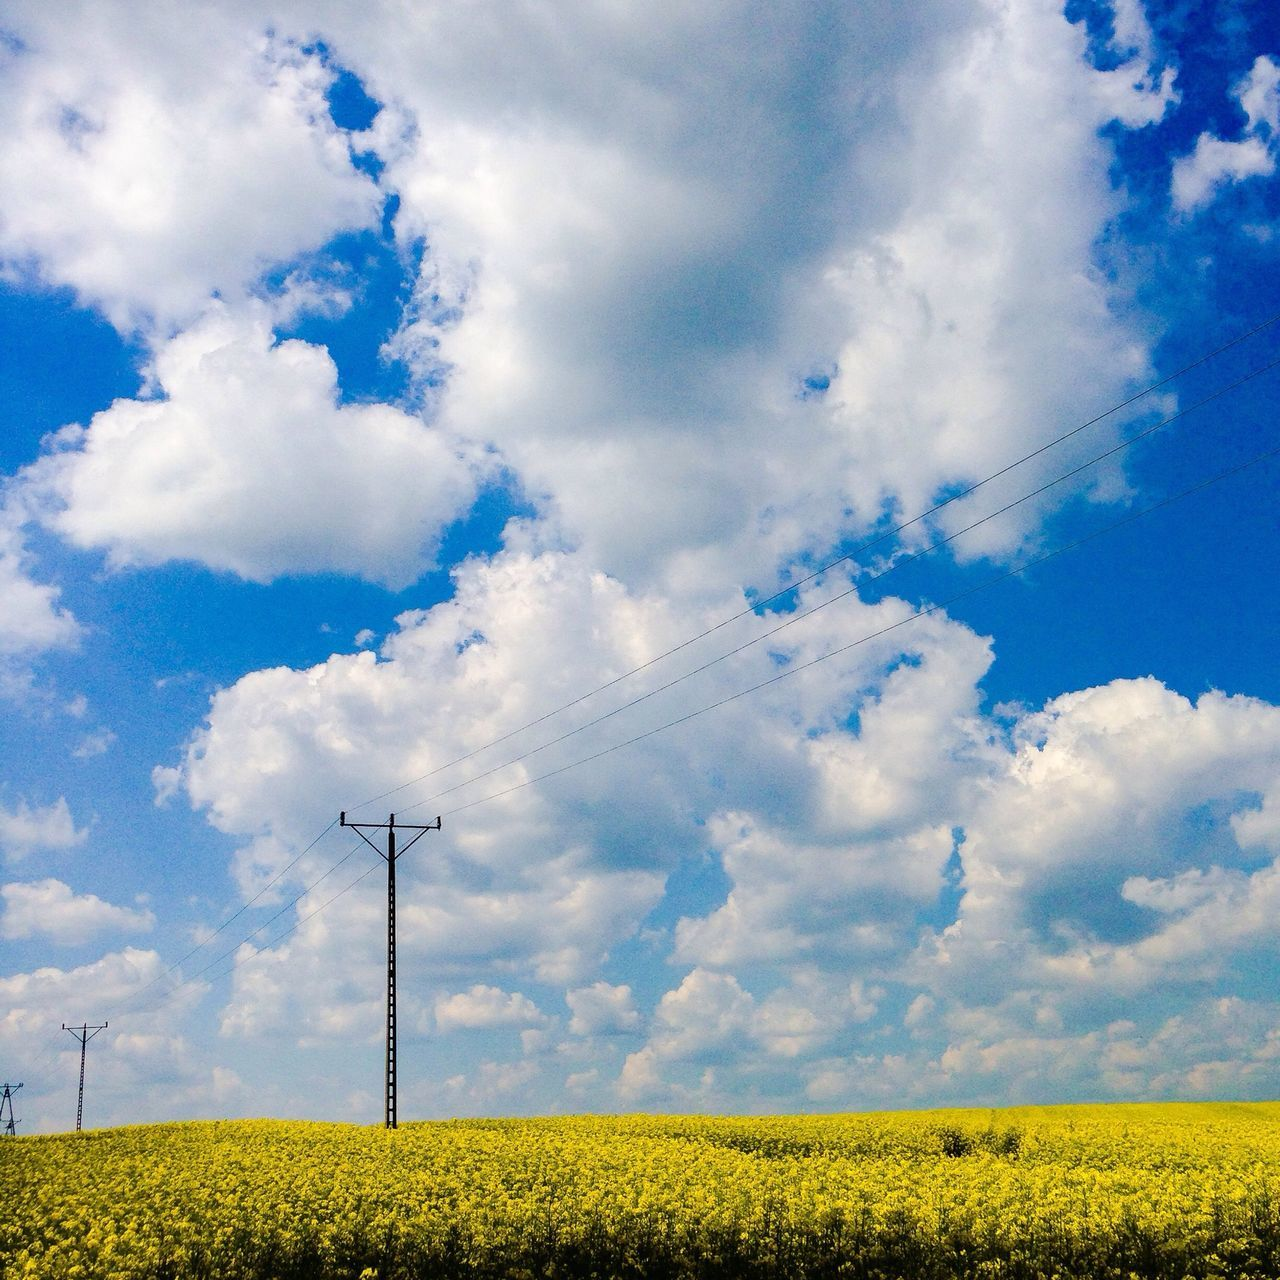 Telephone line passing through agricultural field